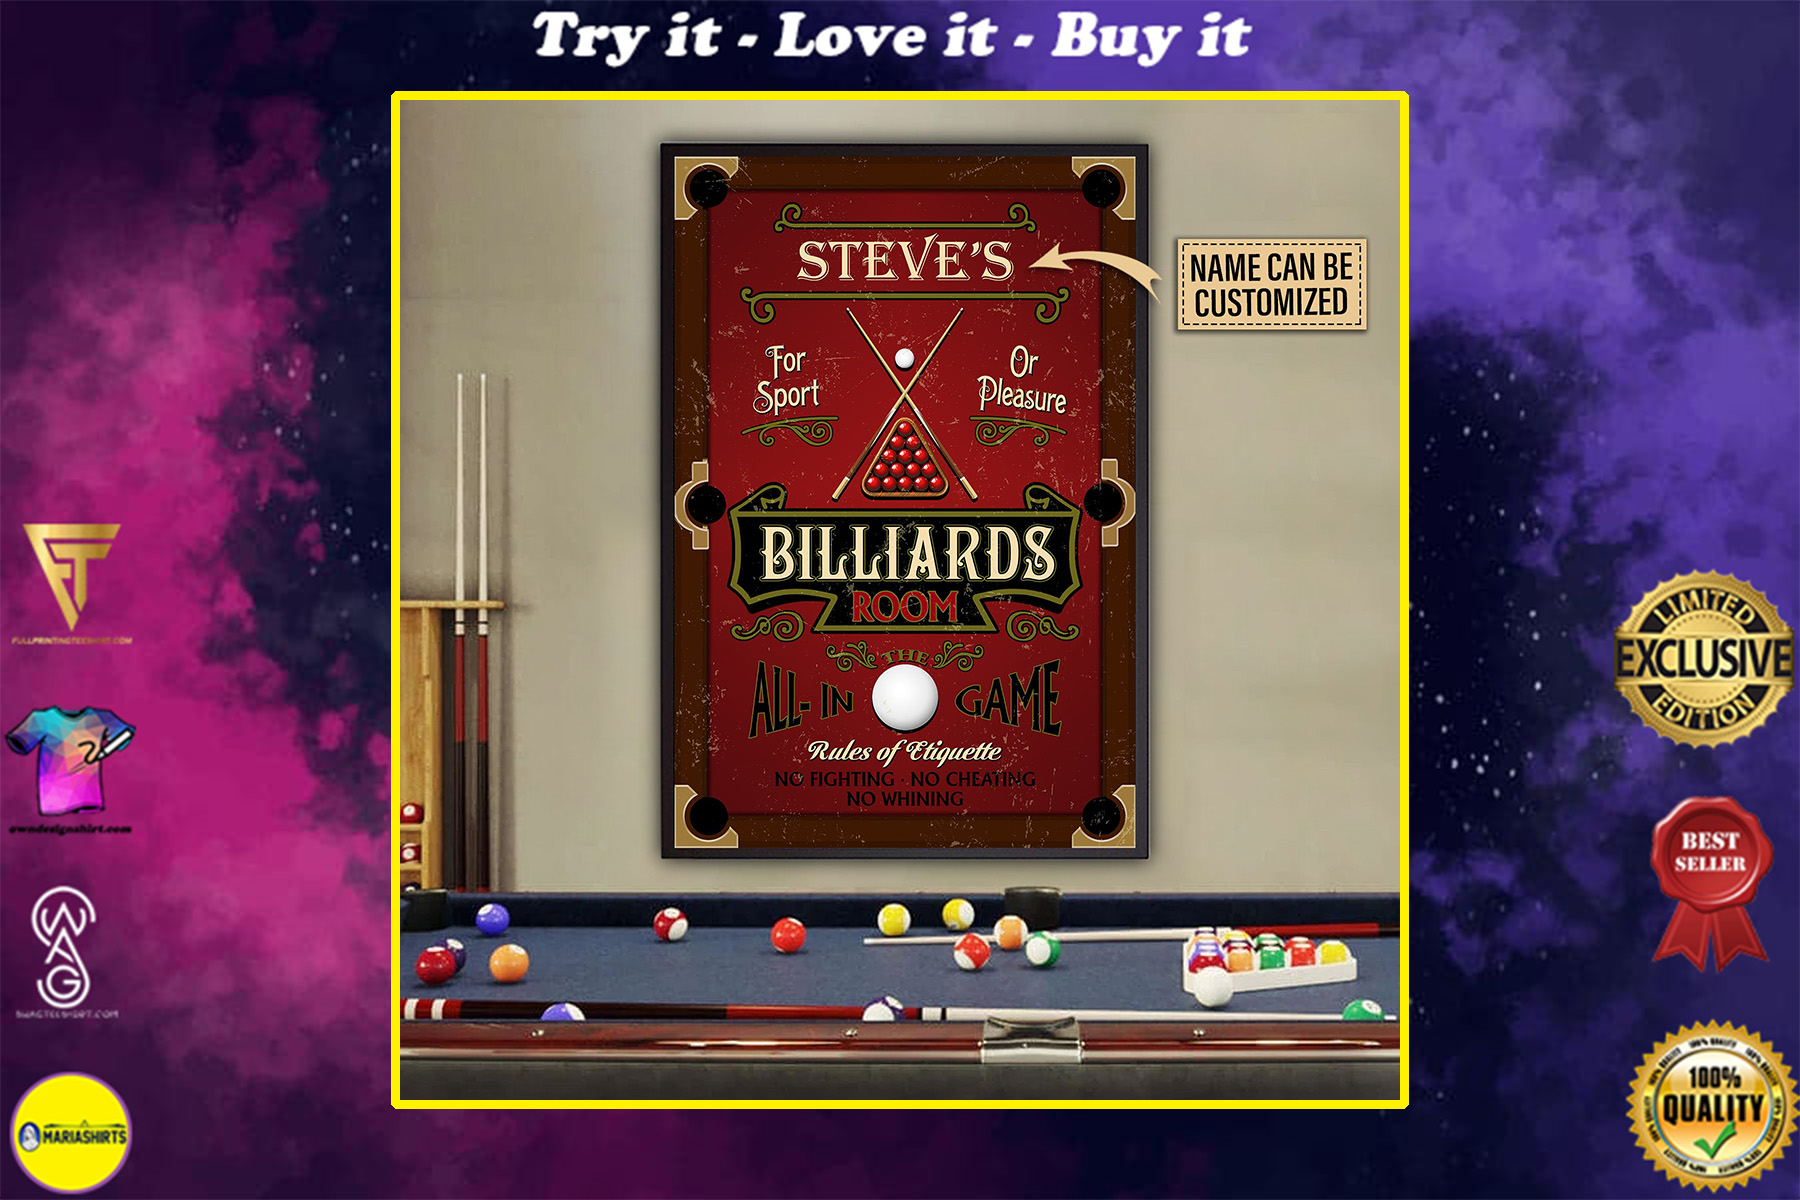 custom your name billiards room snooker all in game poster